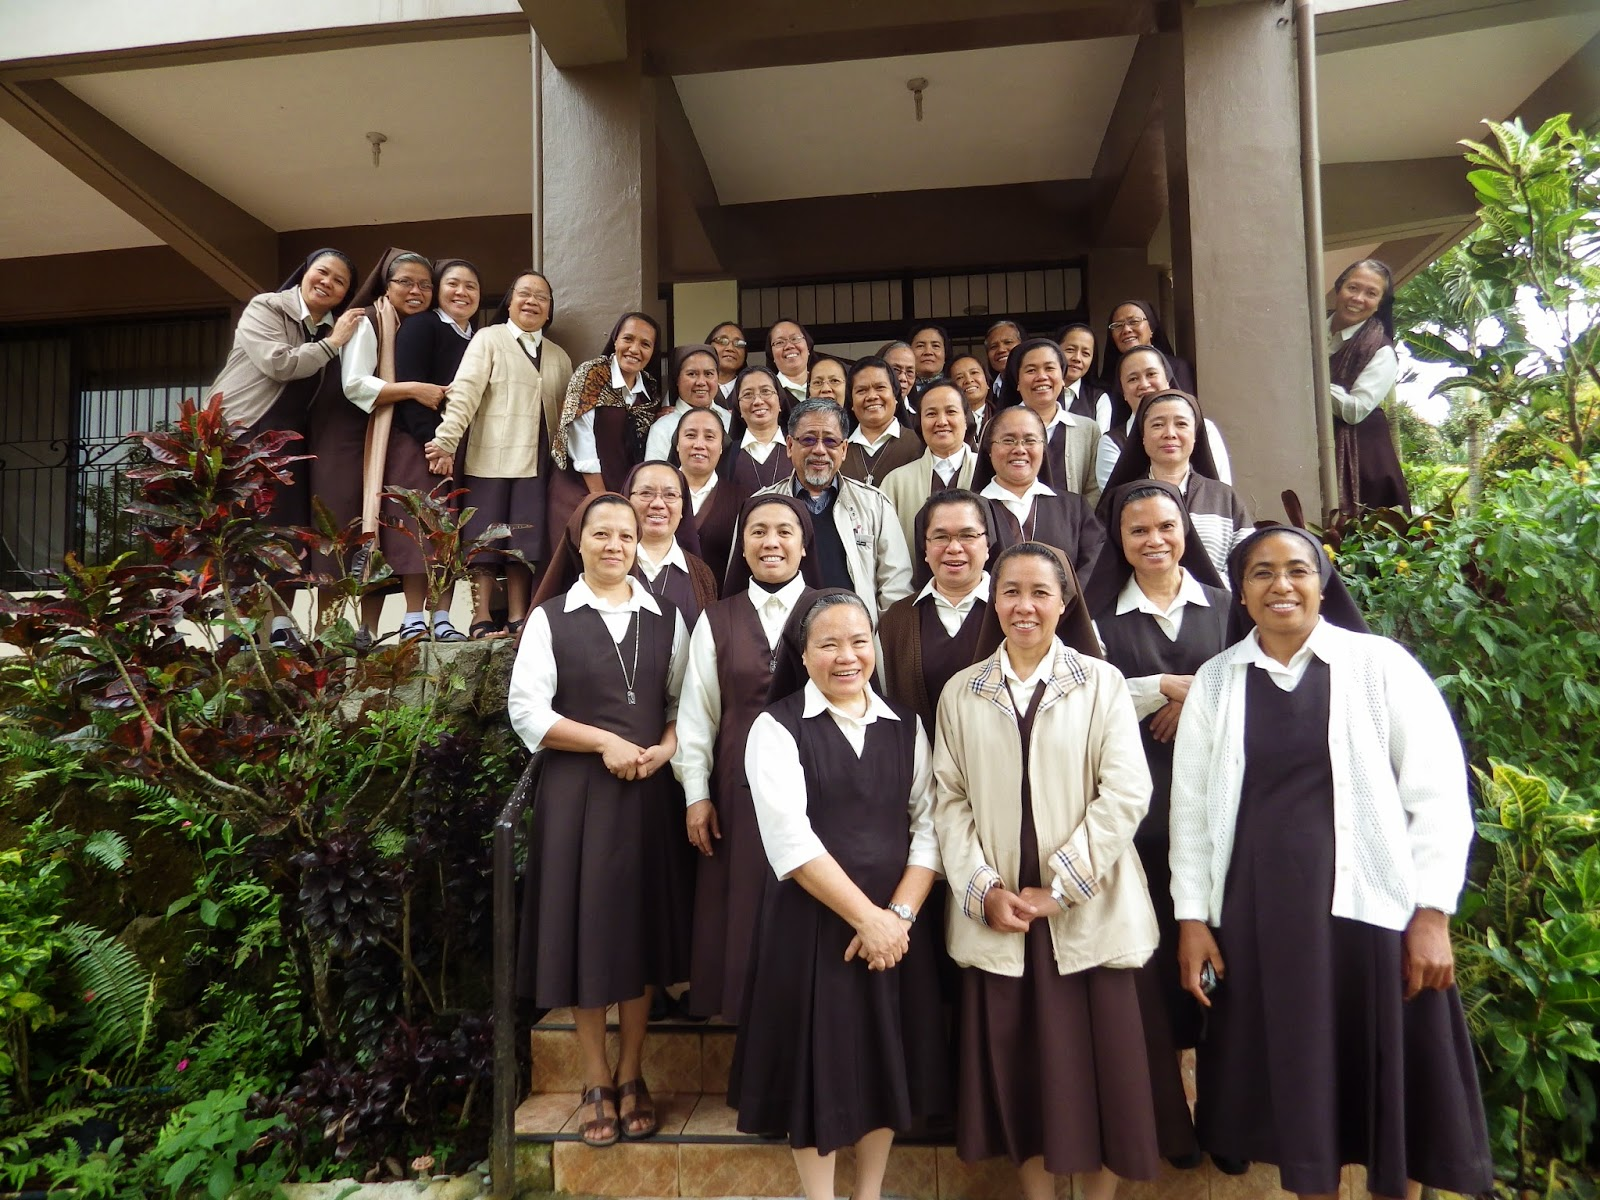 chapter 1 tagaytay city institute Summary of statistics  1 communities, works, members diocese  of parañaque institute of sisters of the angels,  san jose 4120 tagaytay city.